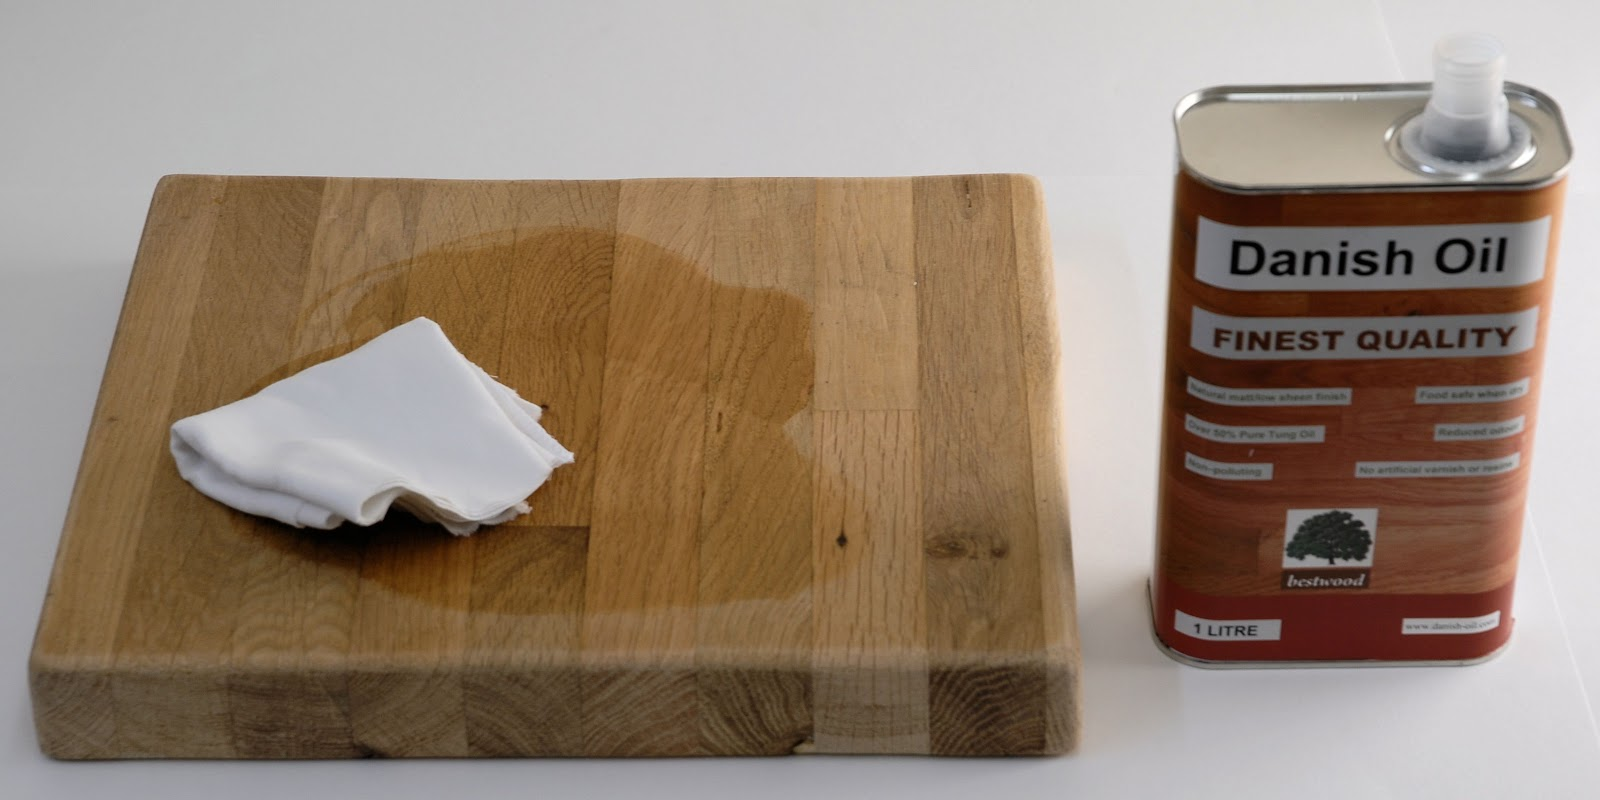 Tung oil vs danish oil - Glossary